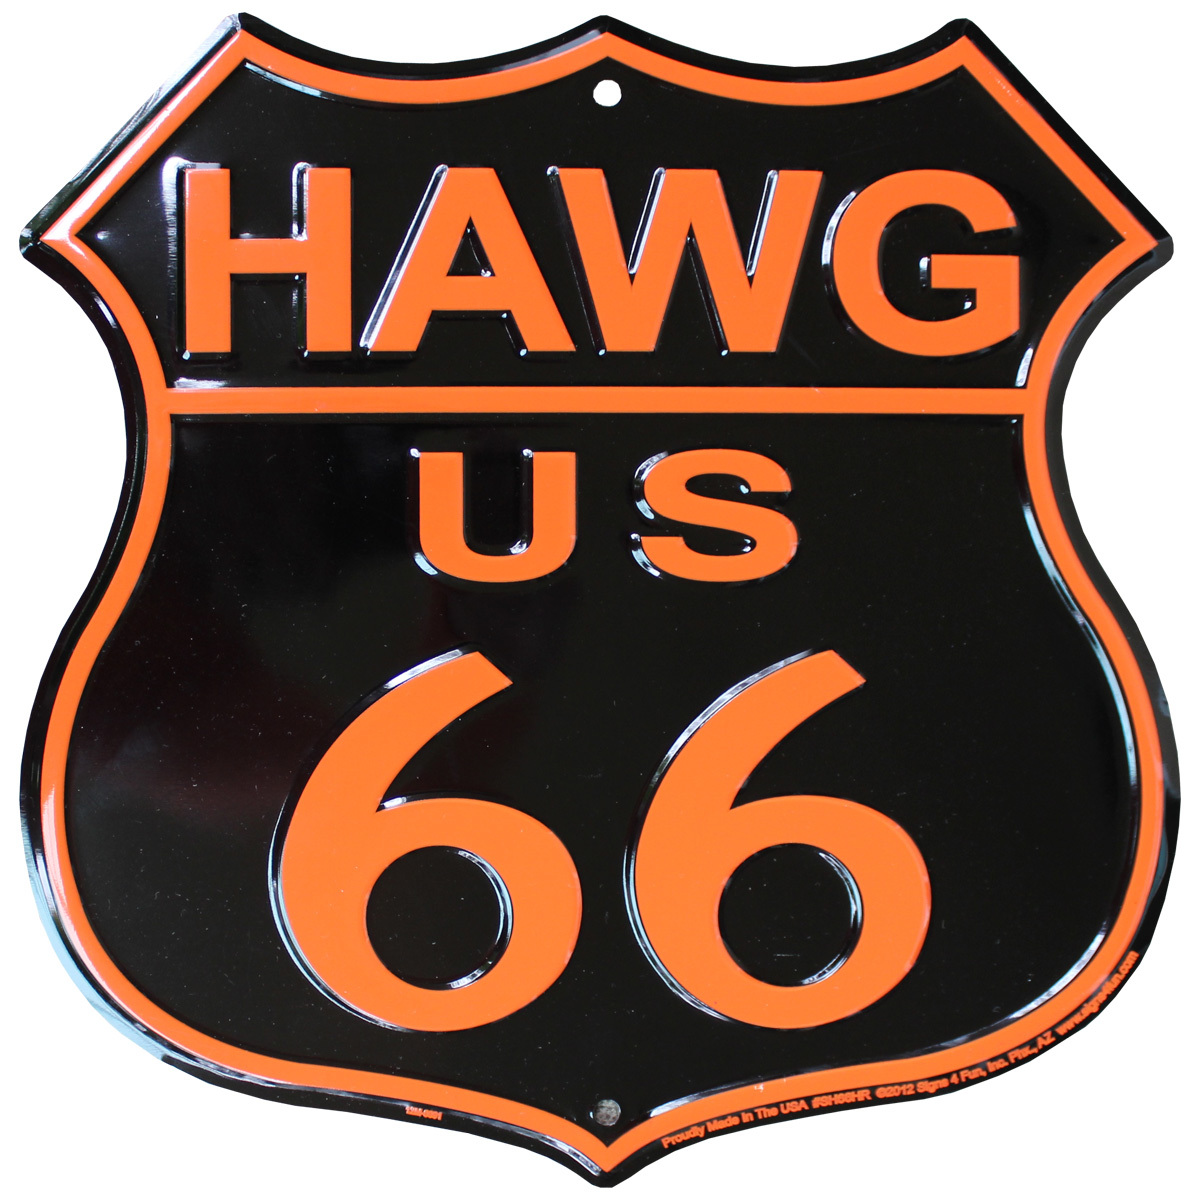 Route 66 Highway Shield (Hawg)